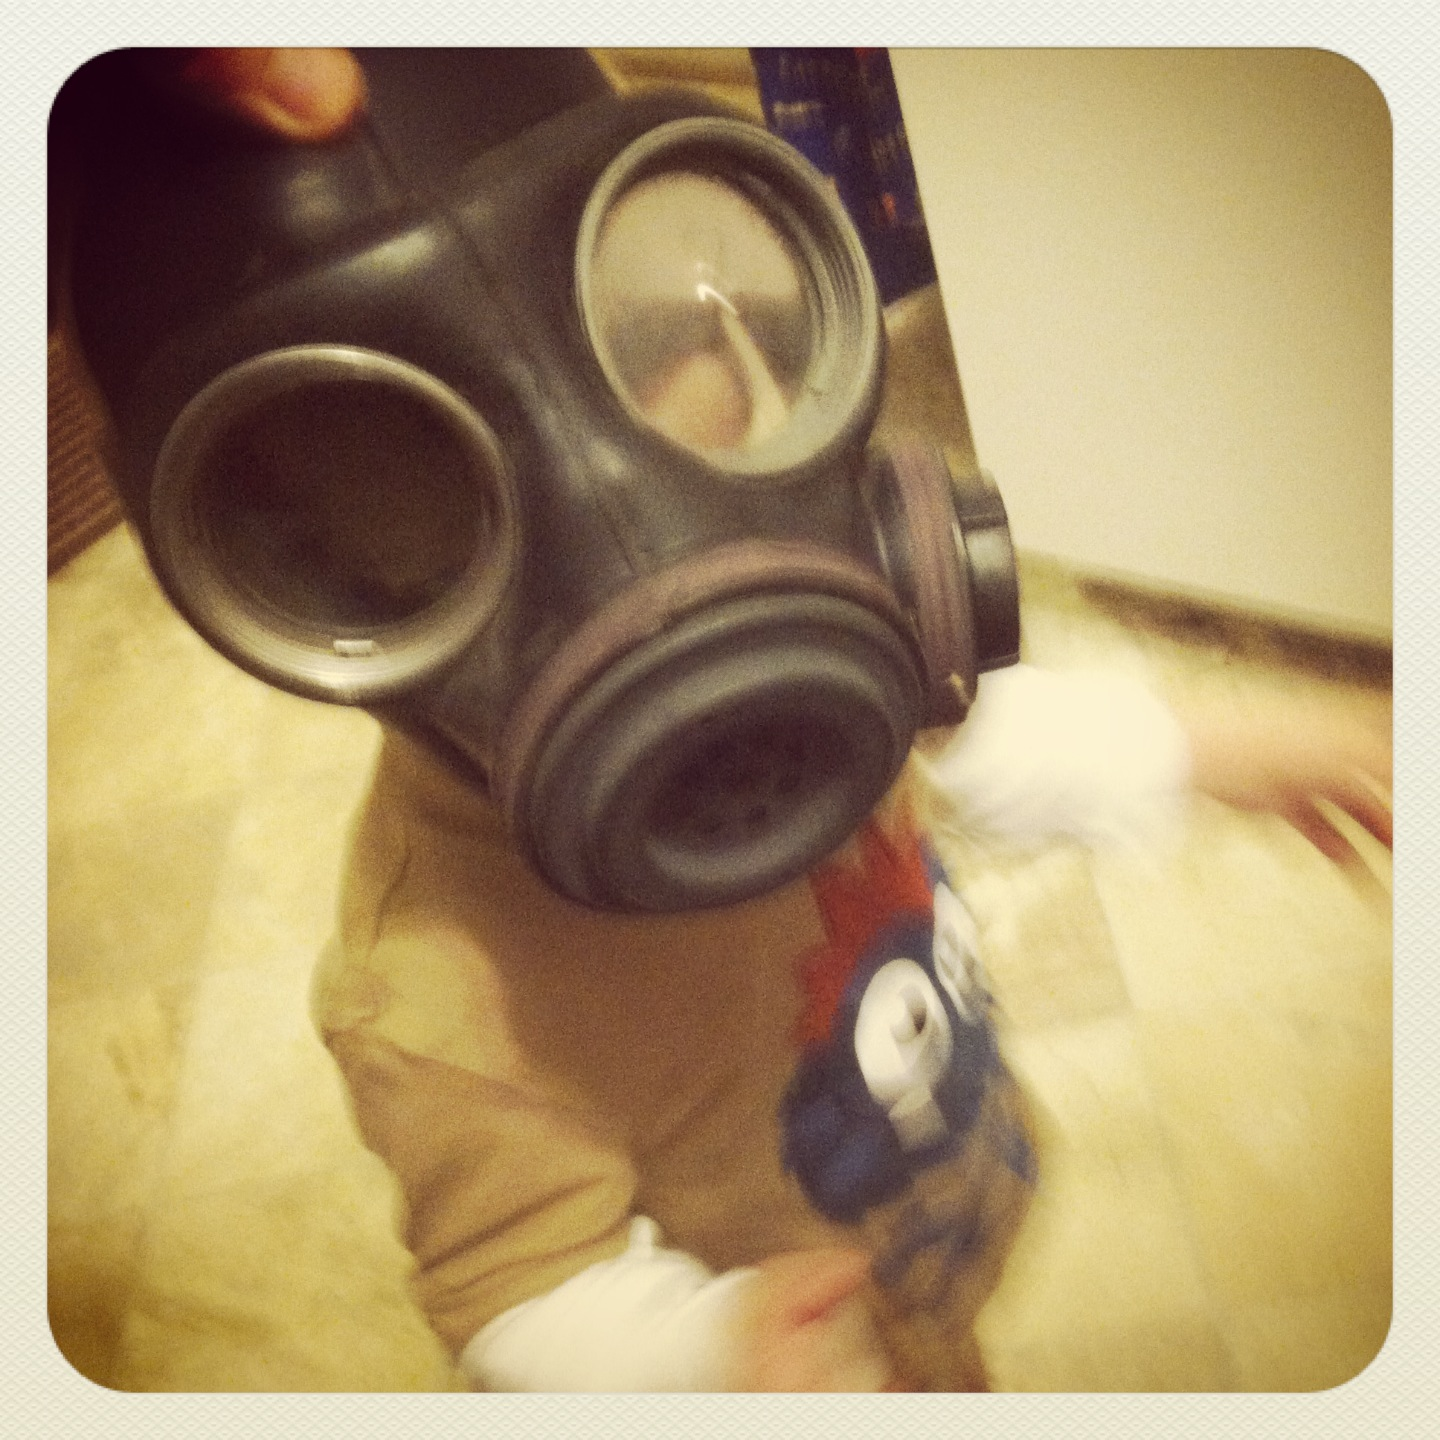 doctor who baby, baby in gas mask, doctor who are you my mummy, empty souls gas mask, baby's first cosplay